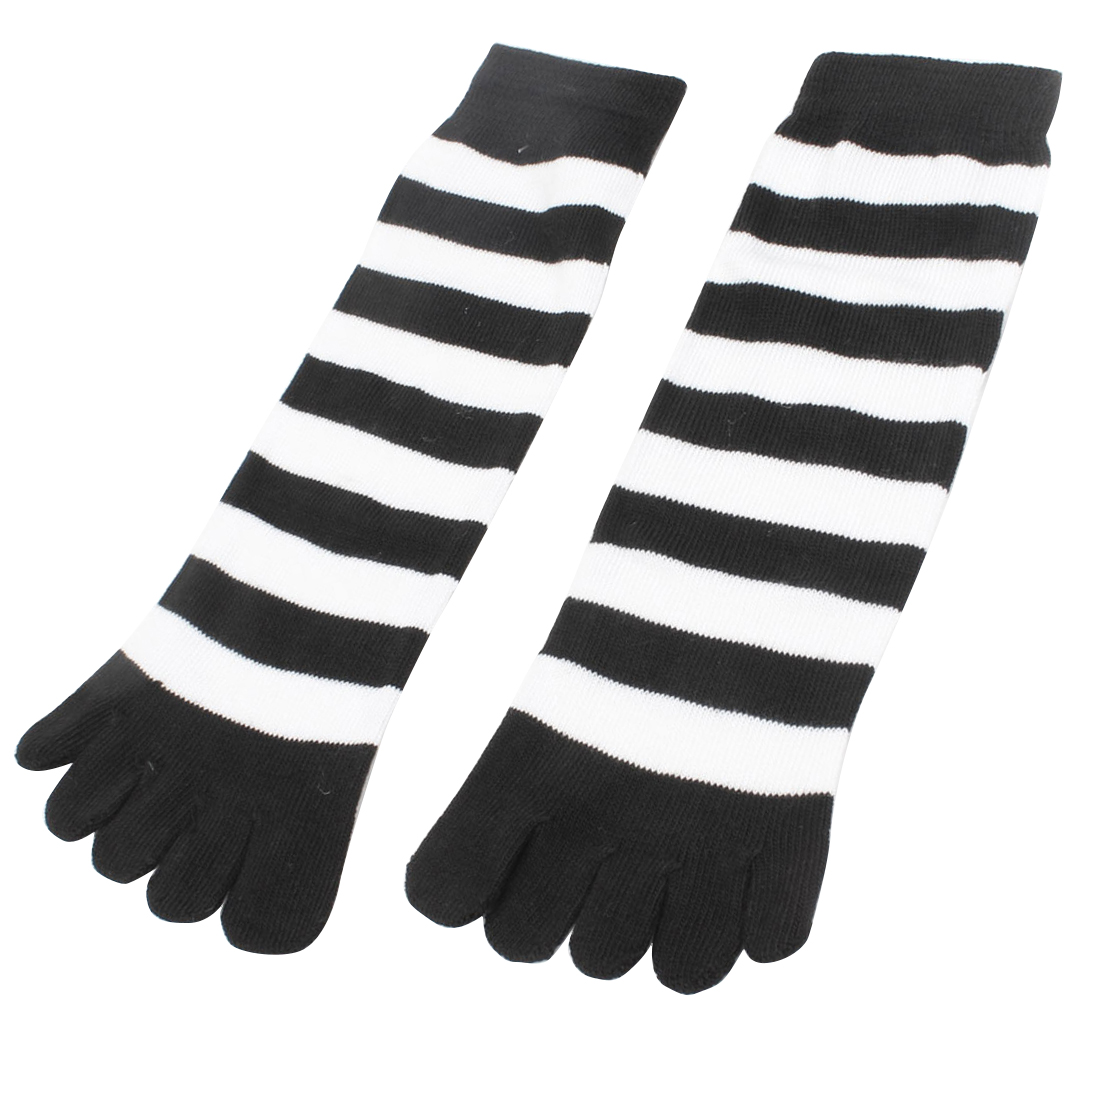 Woman Winter Five Fingers Stretchy Feet Toe Socks Black White Pair